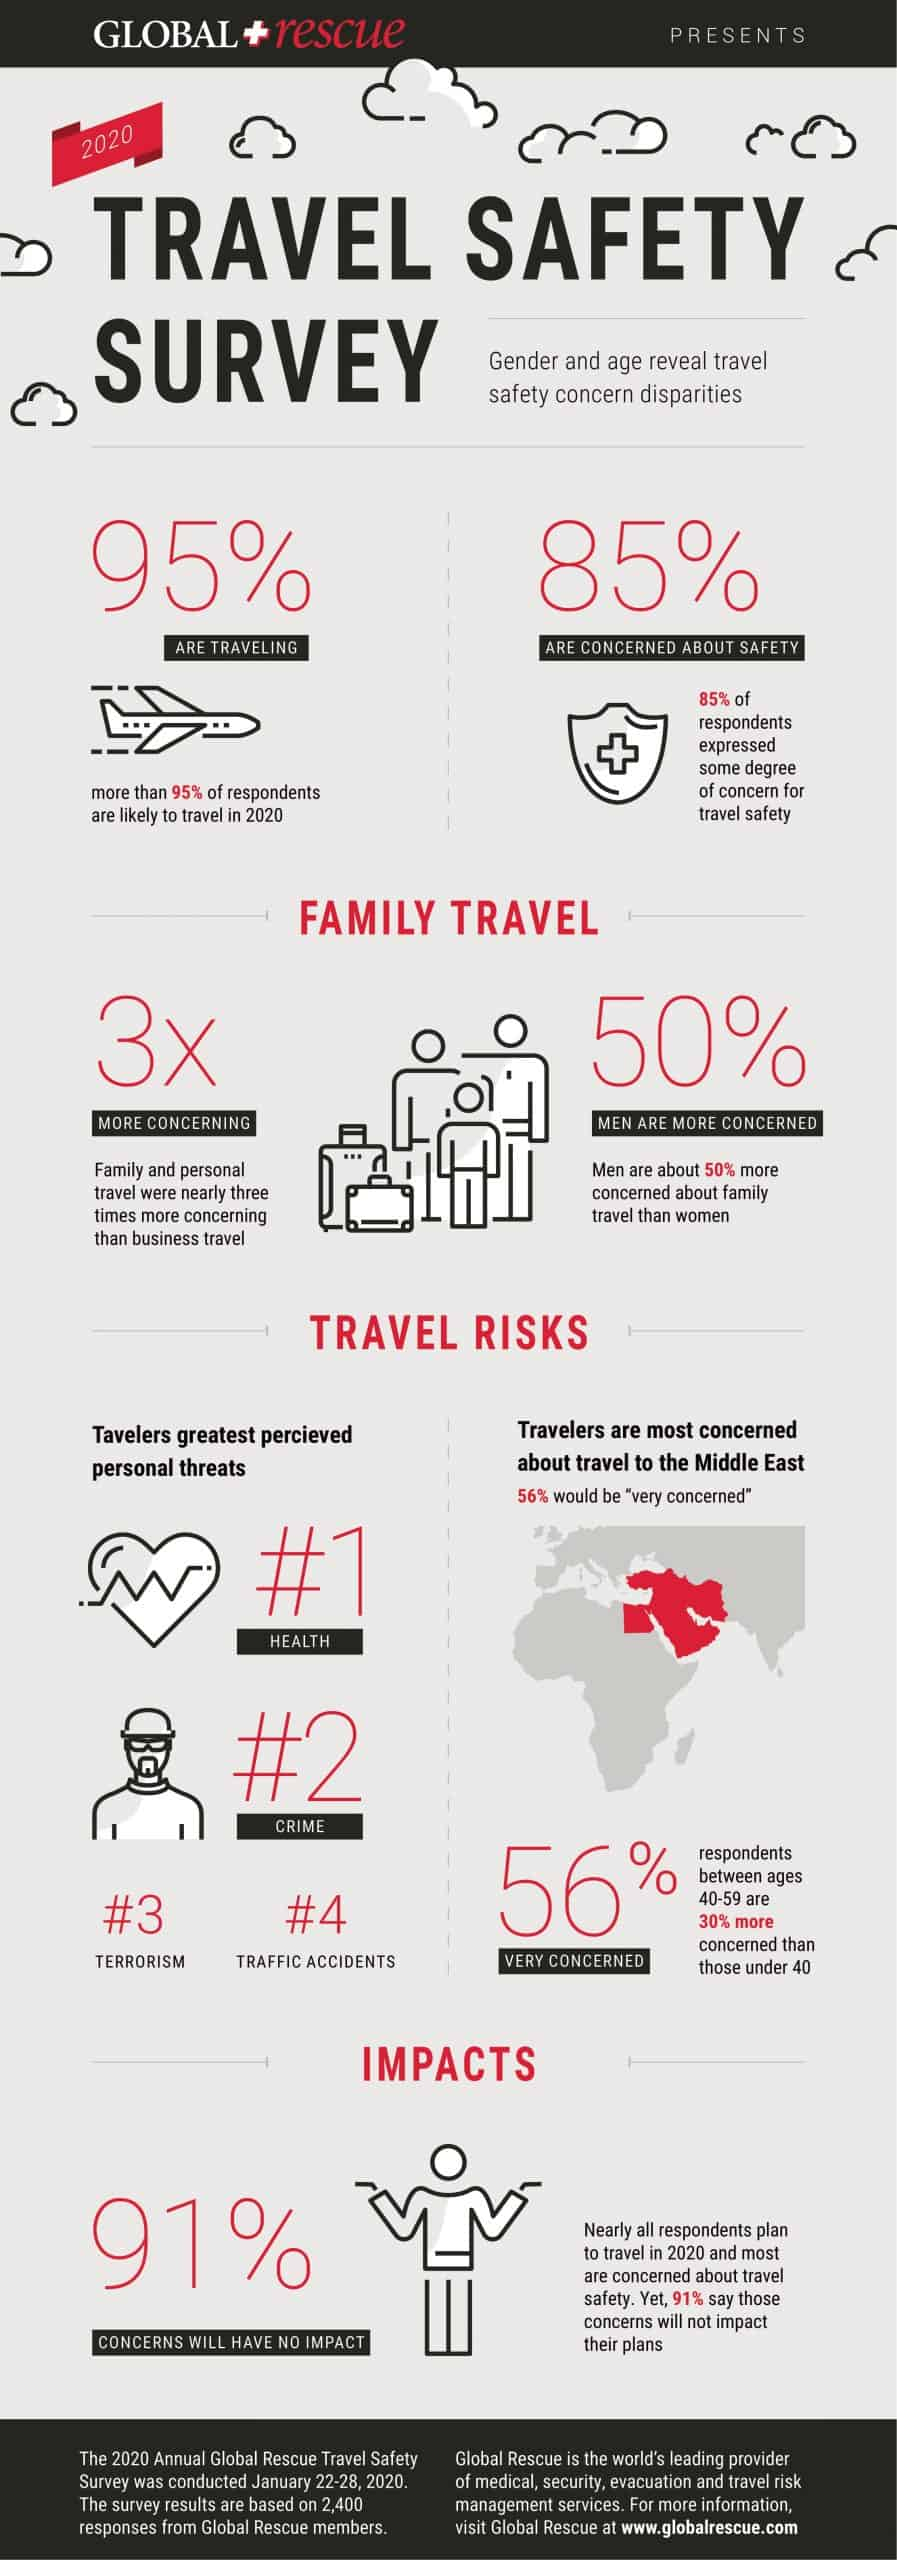 Travel Safety Survey Infographic